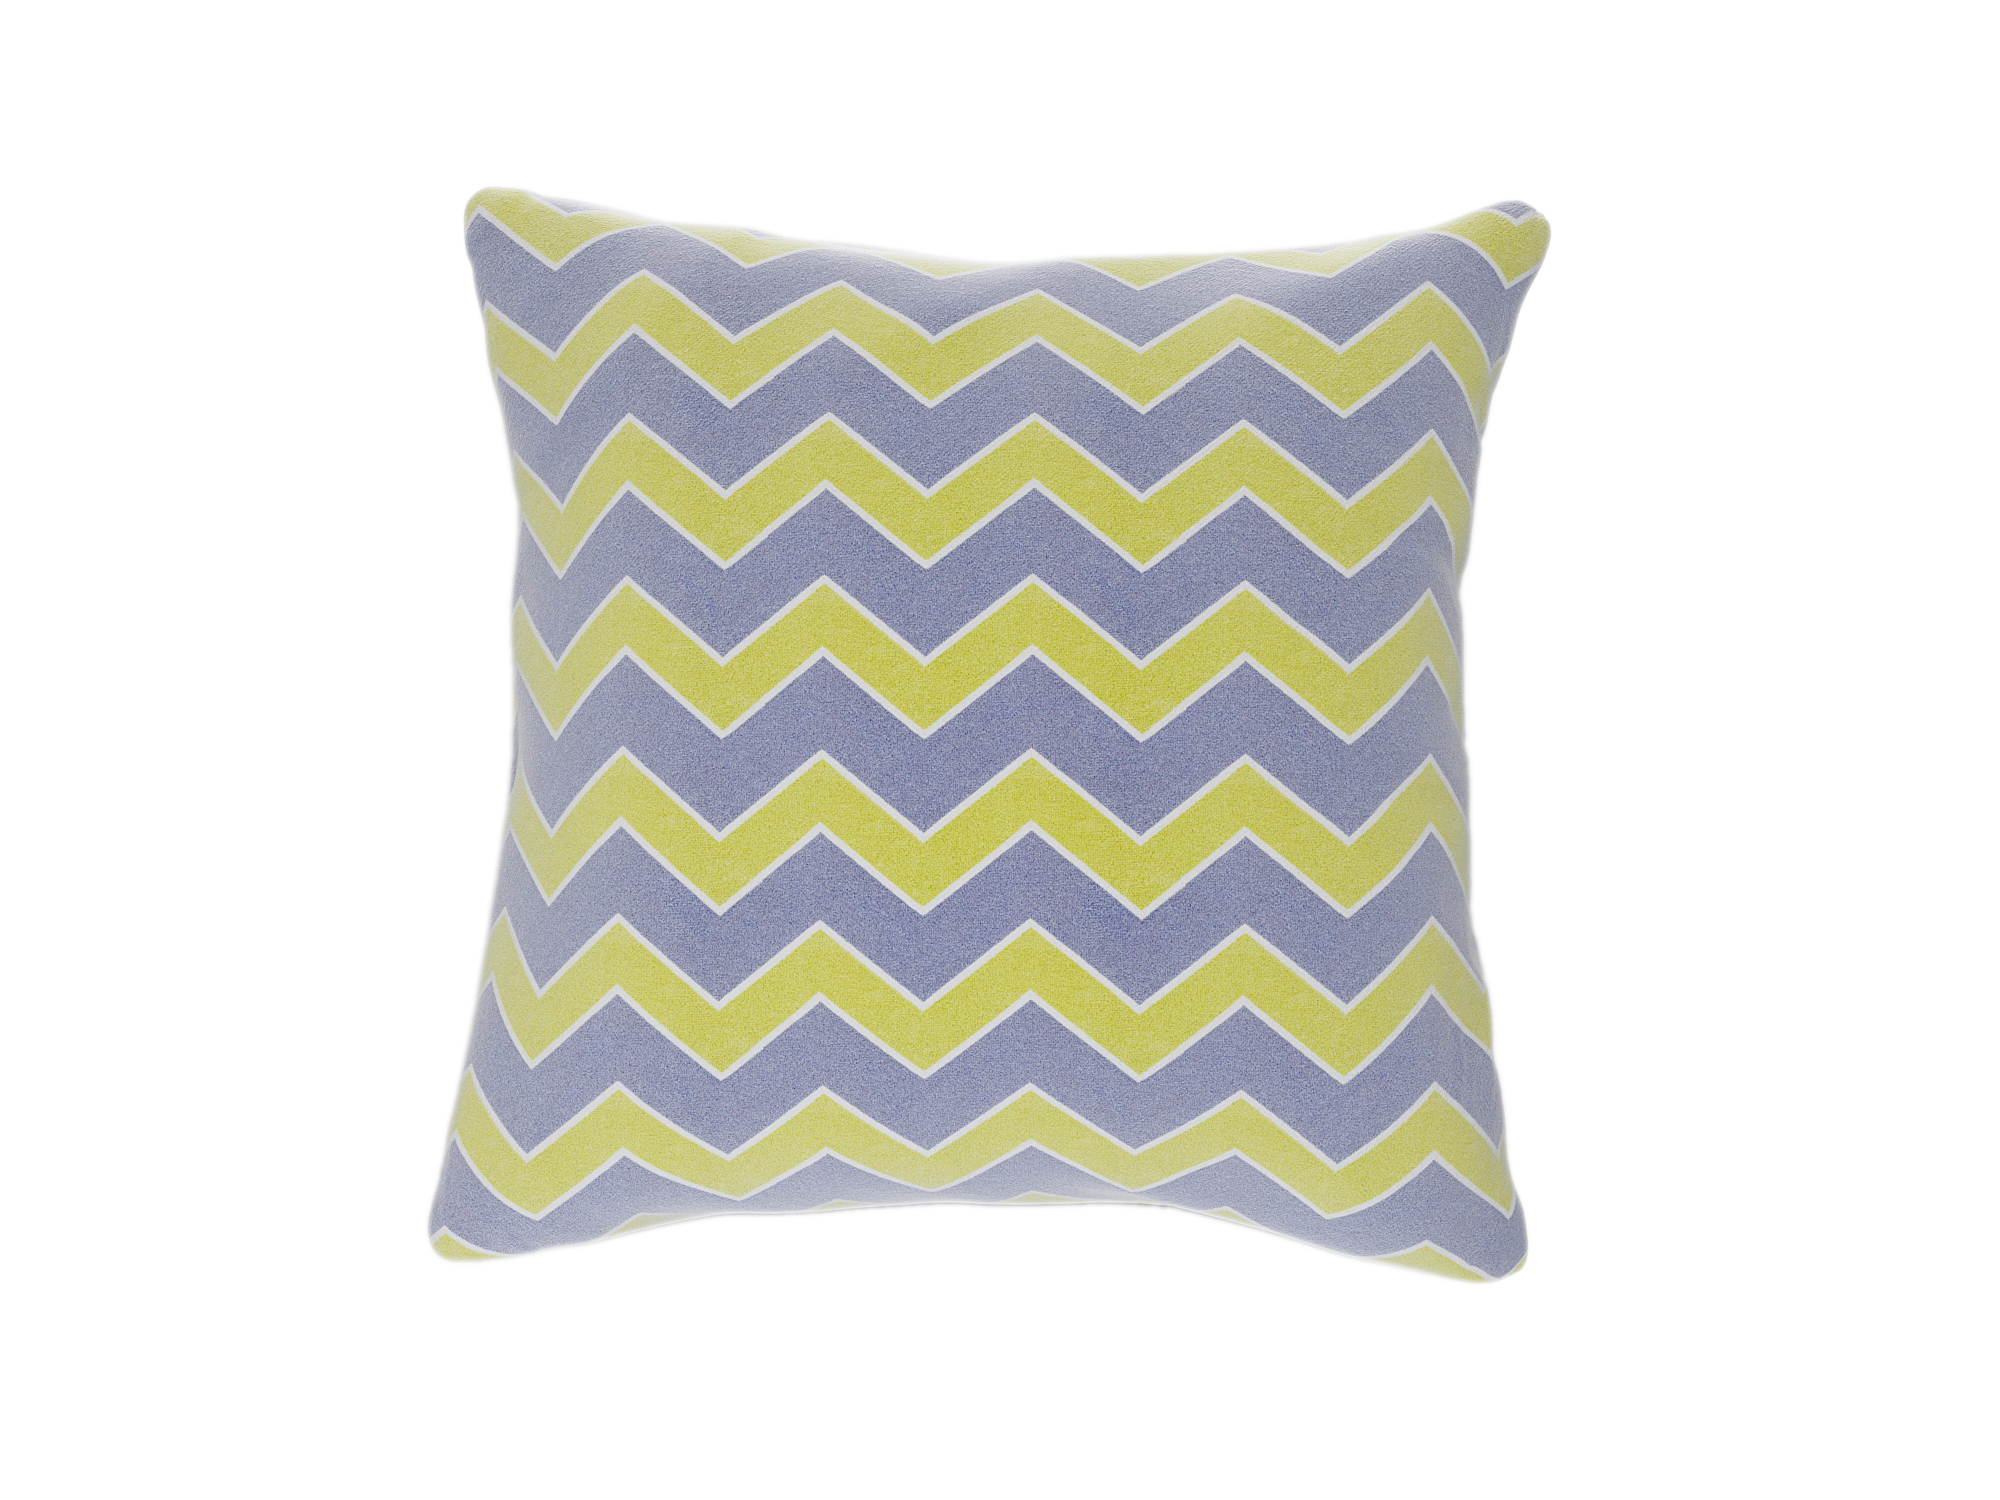 Designer Cushion, Small Square, Geometric Flamestitch